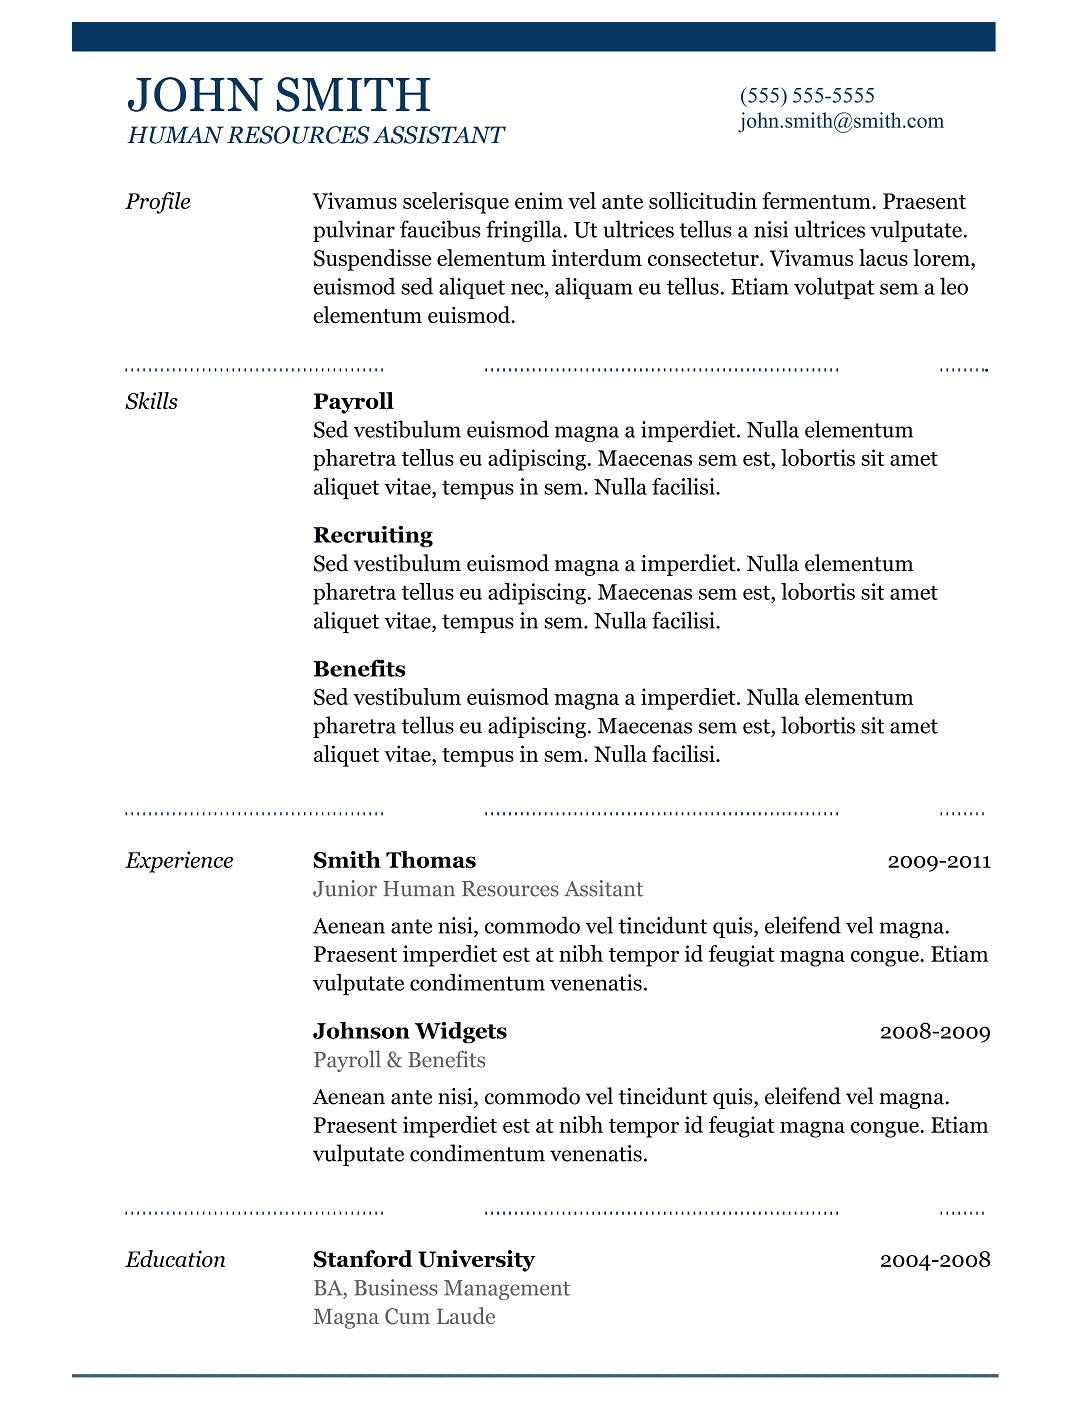 Best Resume Templates resume templates black 9 Best Free Resume Templates Download For Freshers Best Good Resume